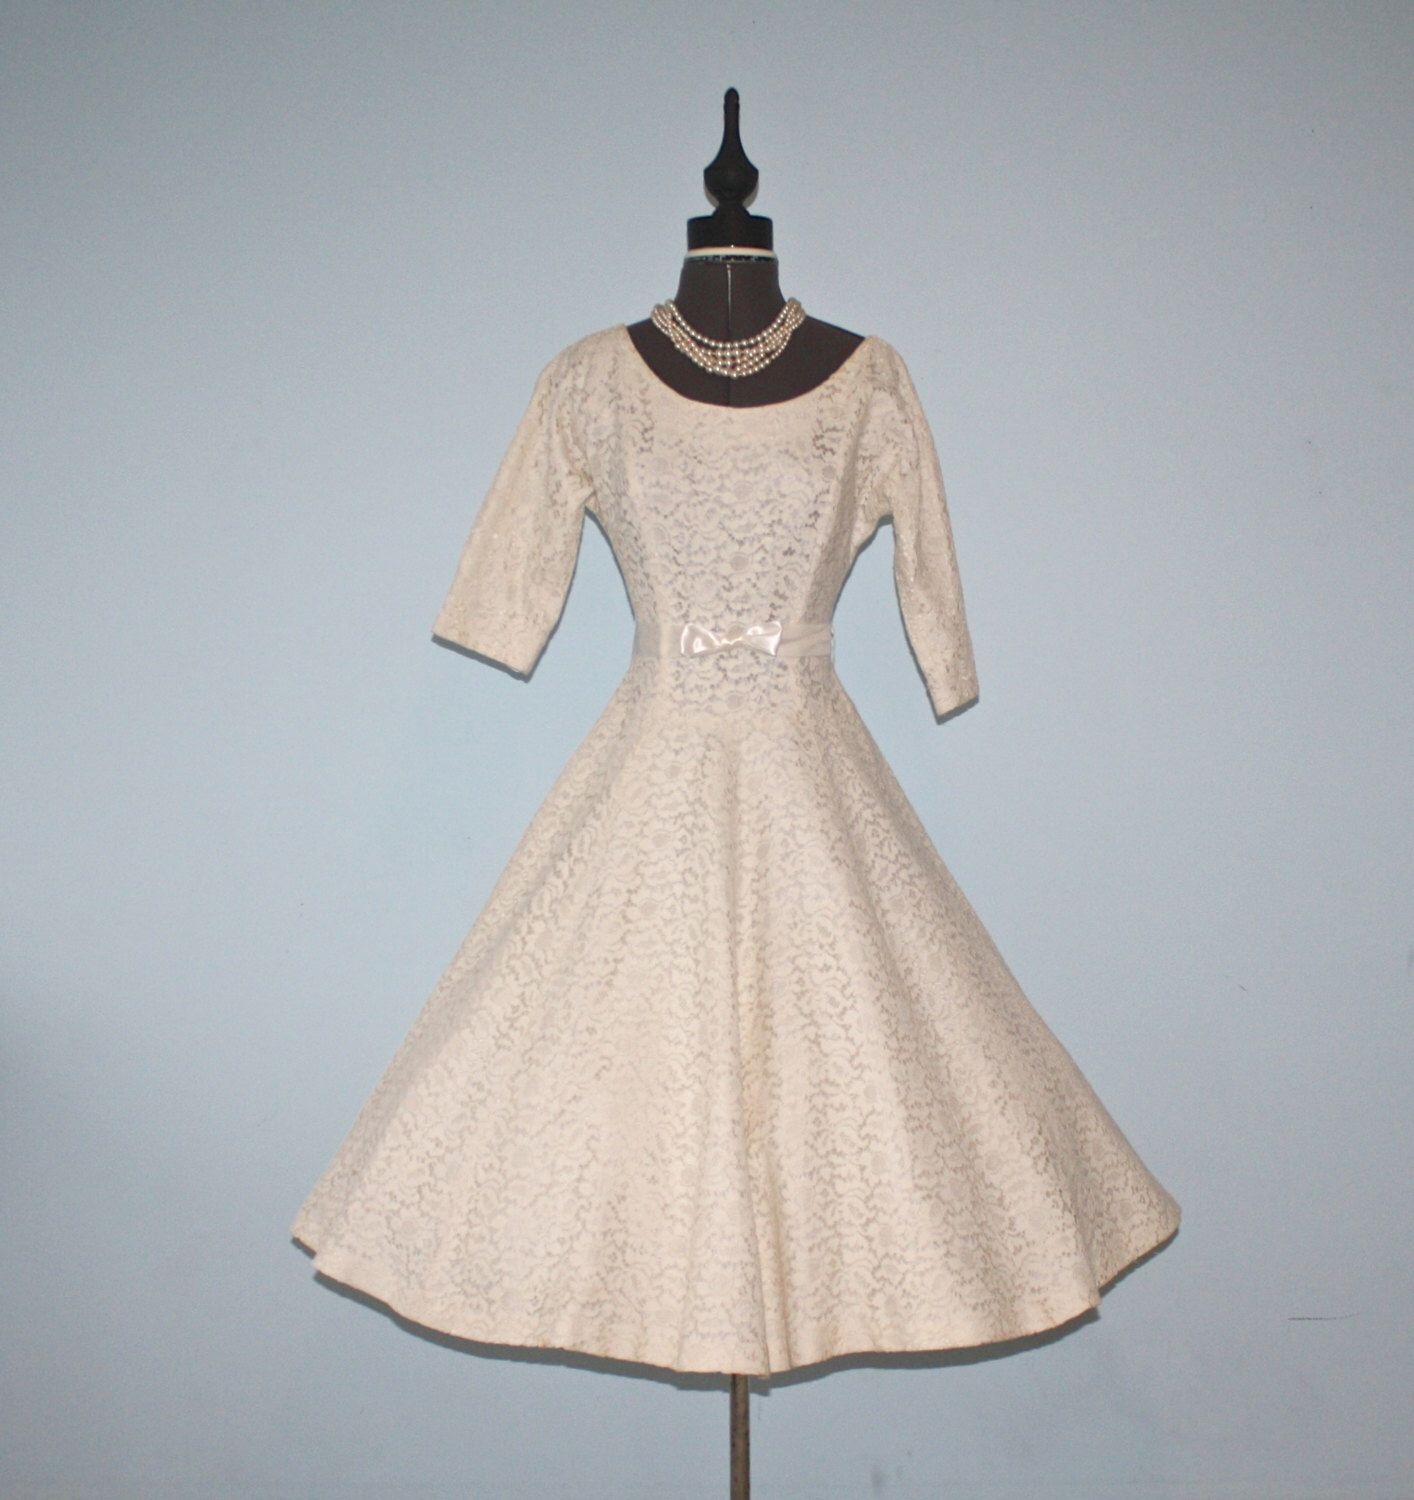 Vintage 1950s Lace Party Dress / 50s Ivory White Chantilly Lace ...